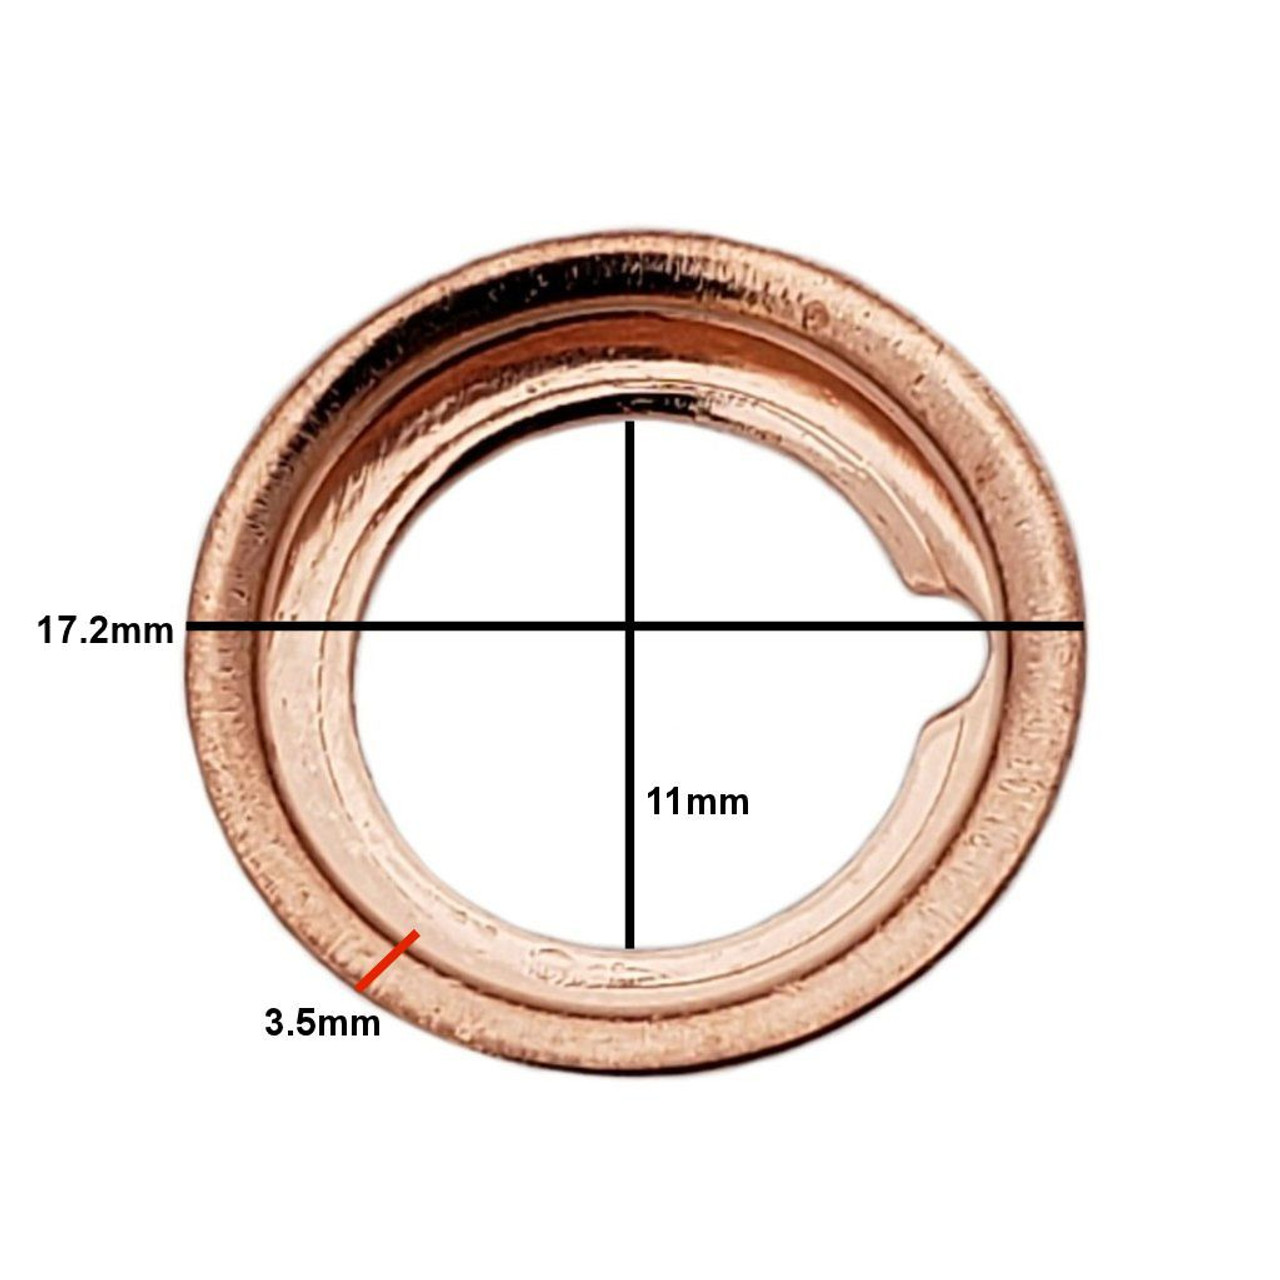 Measurements on M12 Nissan Style Crush Drain Plug Gasket - Interchanges: Dorman 097-134, Nissan 11026-01M00, 11026-01M02, 11026-JA00A , Ford F4XY-6734-A, XF5Z-6734-AA